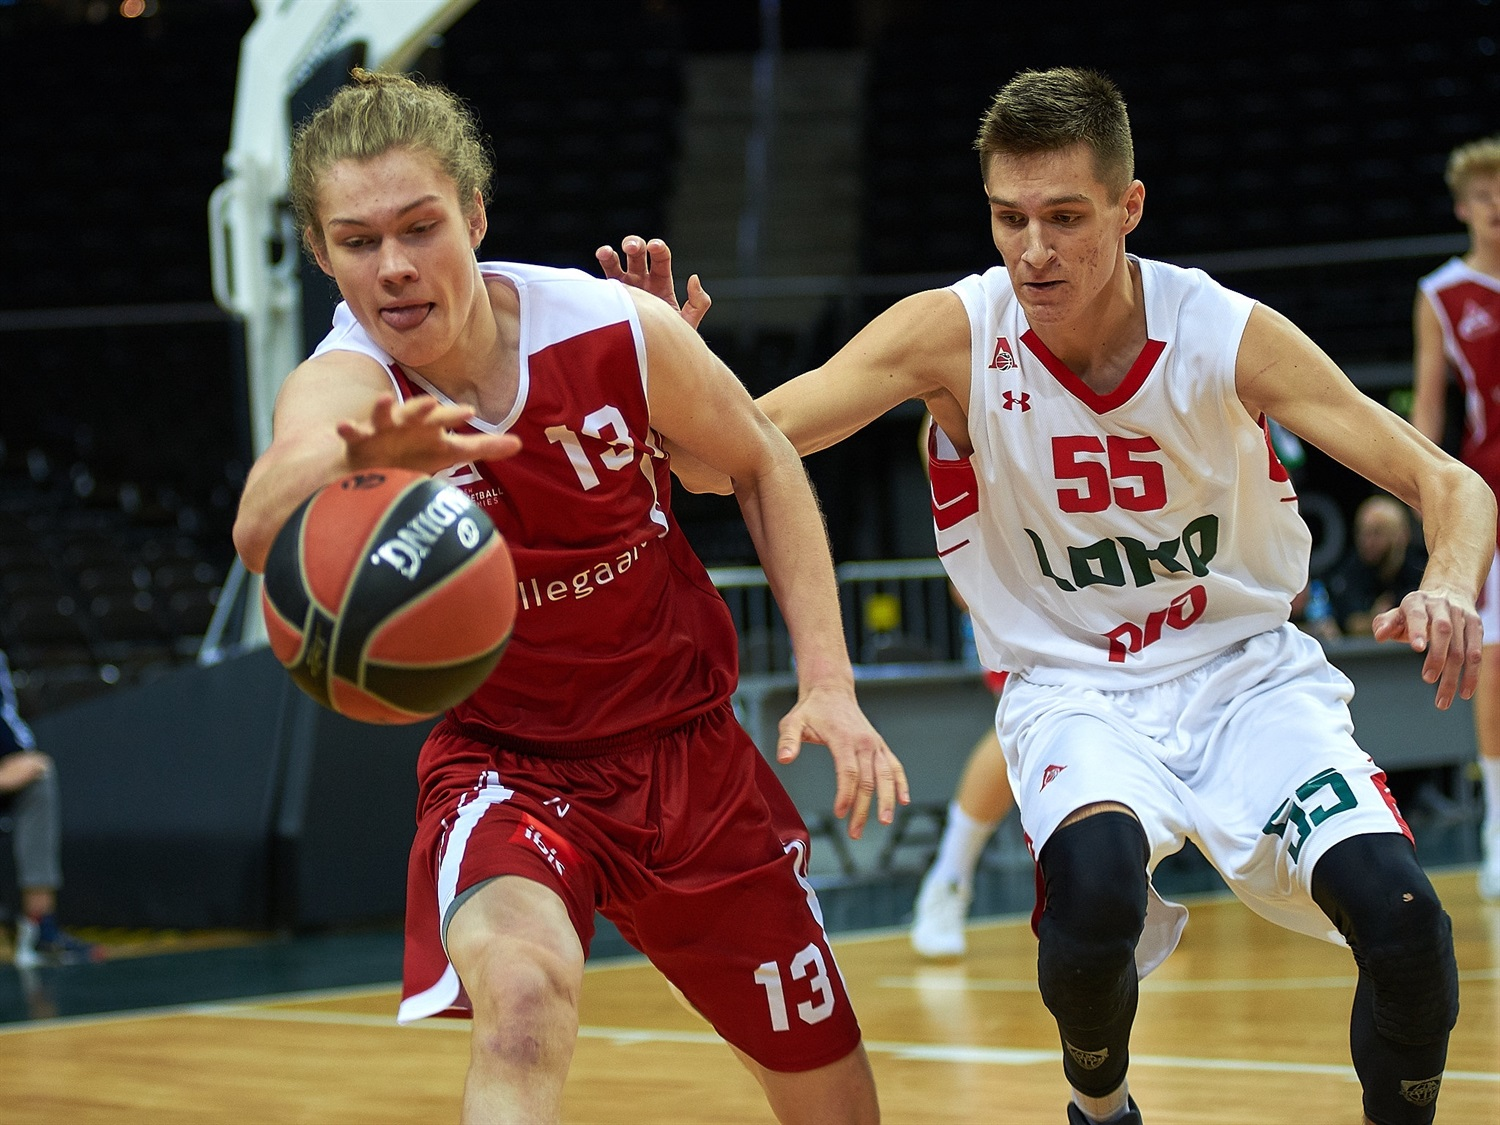 Linus Gron - U18 DBA Copenhagen (photo Zalgiris) - JT18